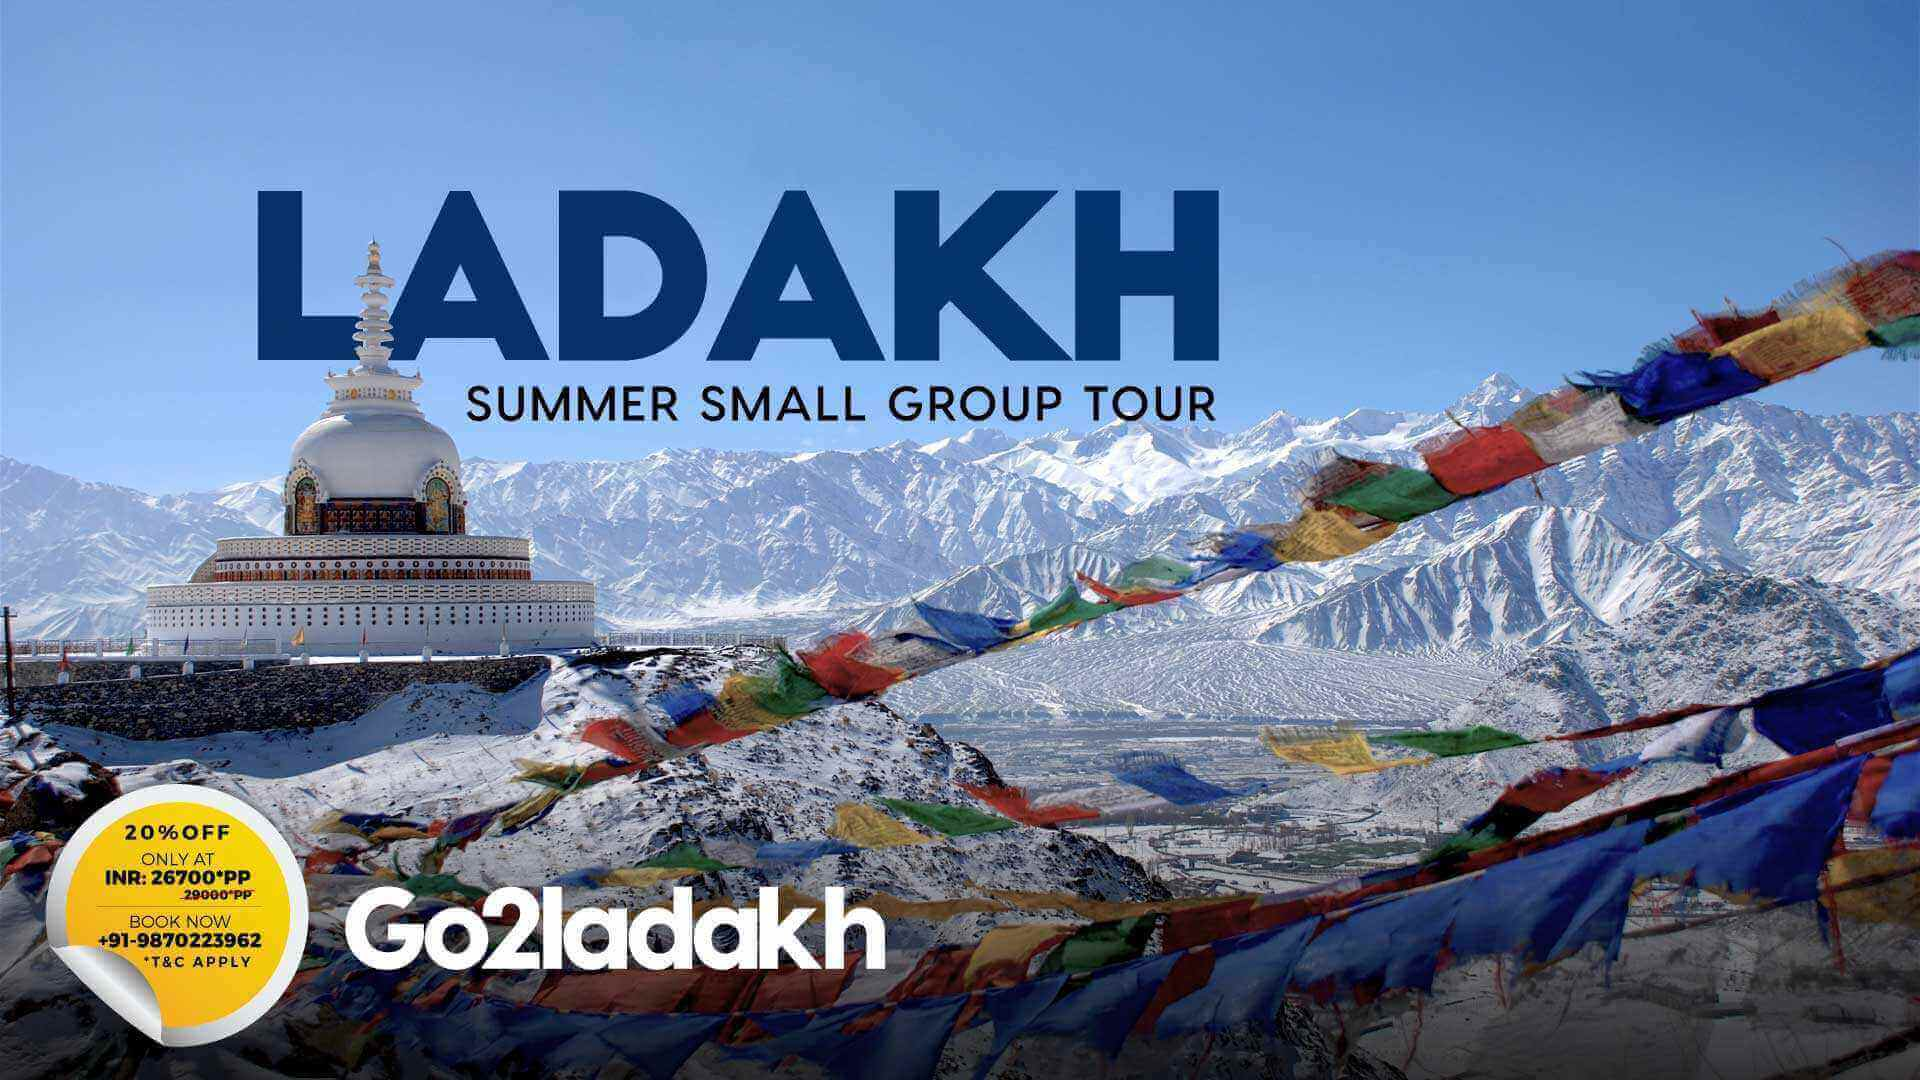 CLASSIC LADAKH TOUR PACKAGE